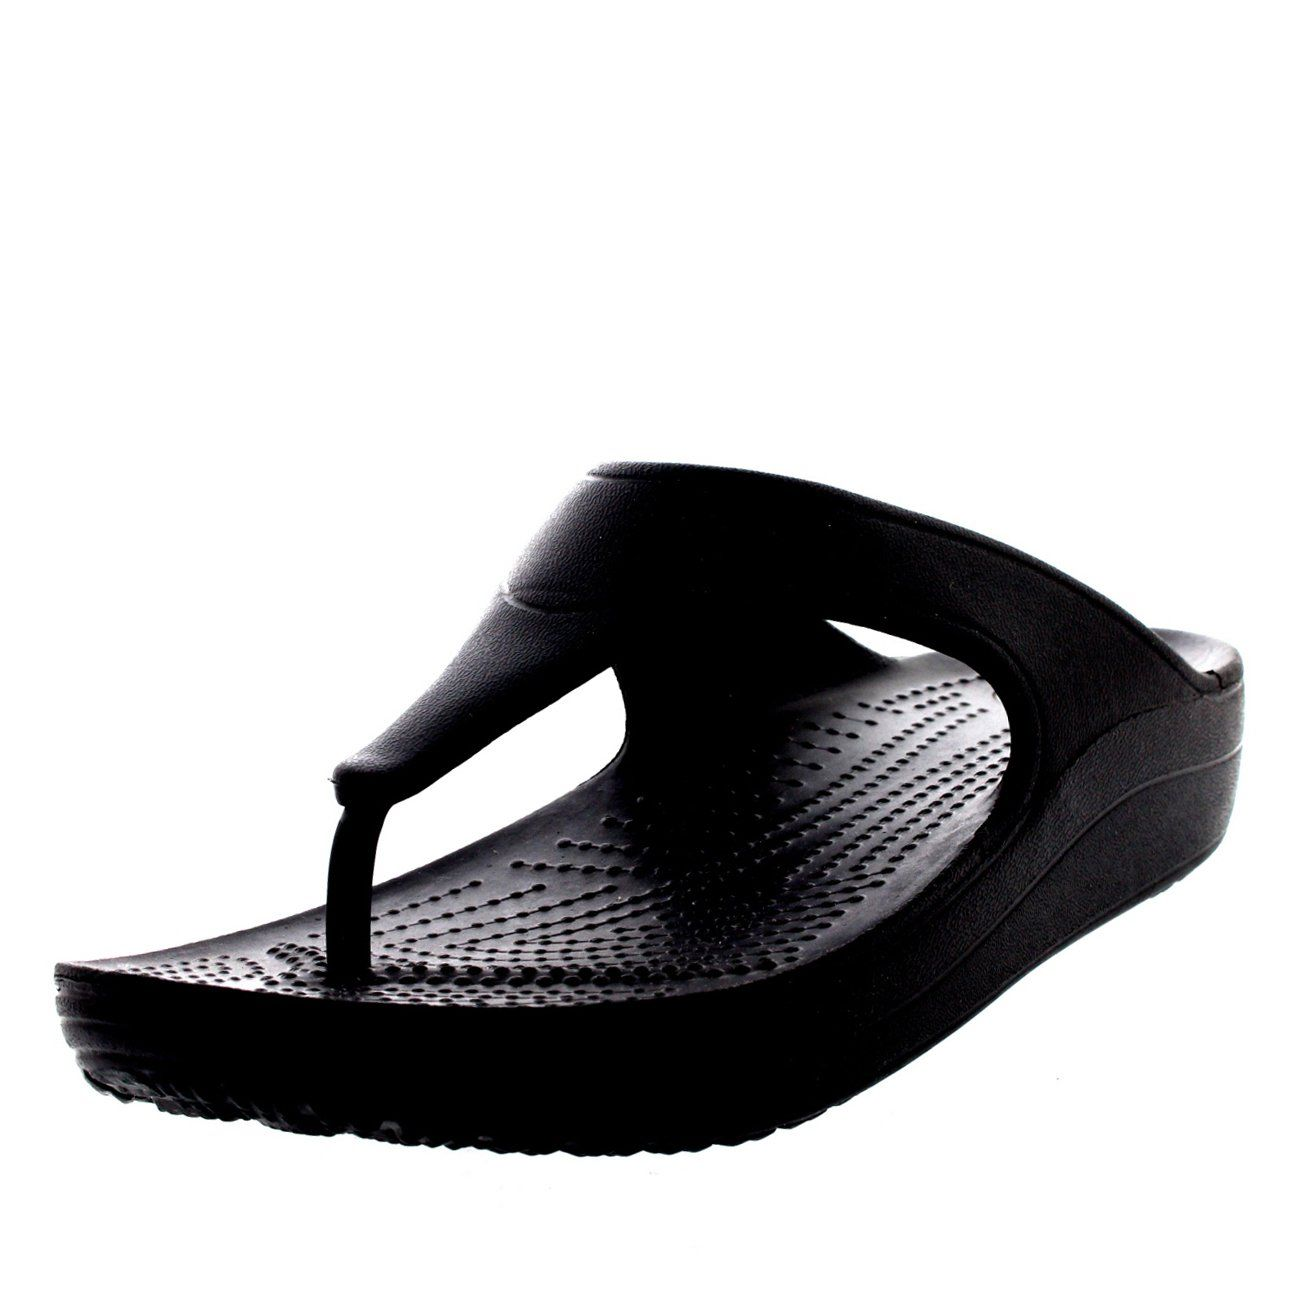 26954ae17e5 Womens Crocs Sloane Platform Flip Sandals Beach Lightweight Flip Flops      Many thanks for viewing our photograph. (This is an affiliate link)   ...